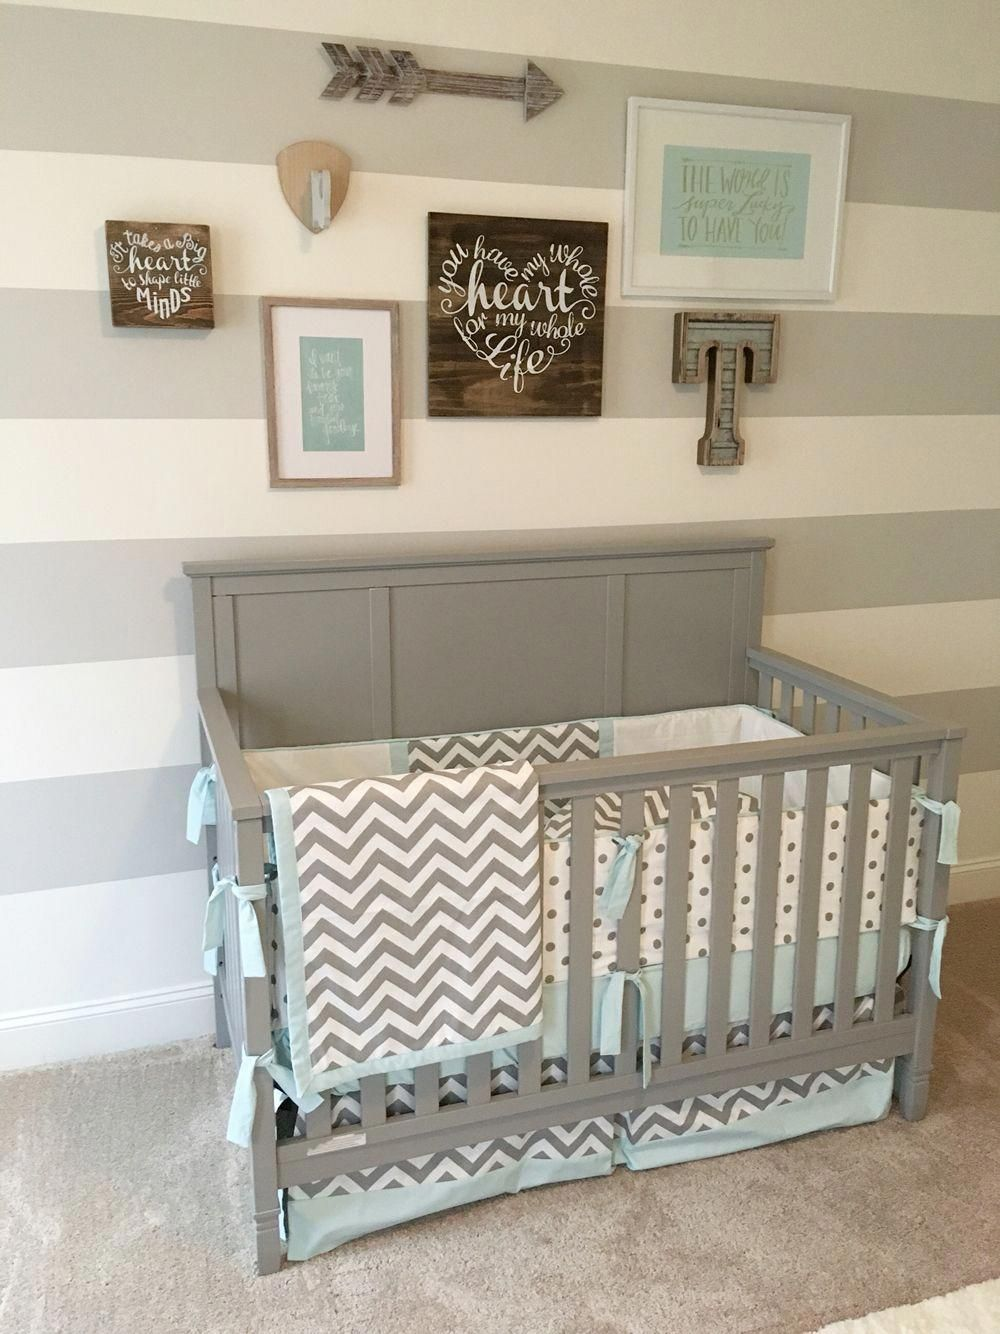 Baby Boy Room Design Pictures: #kidsbedroom Hashtag • Instagram Posts, Videos & Stories